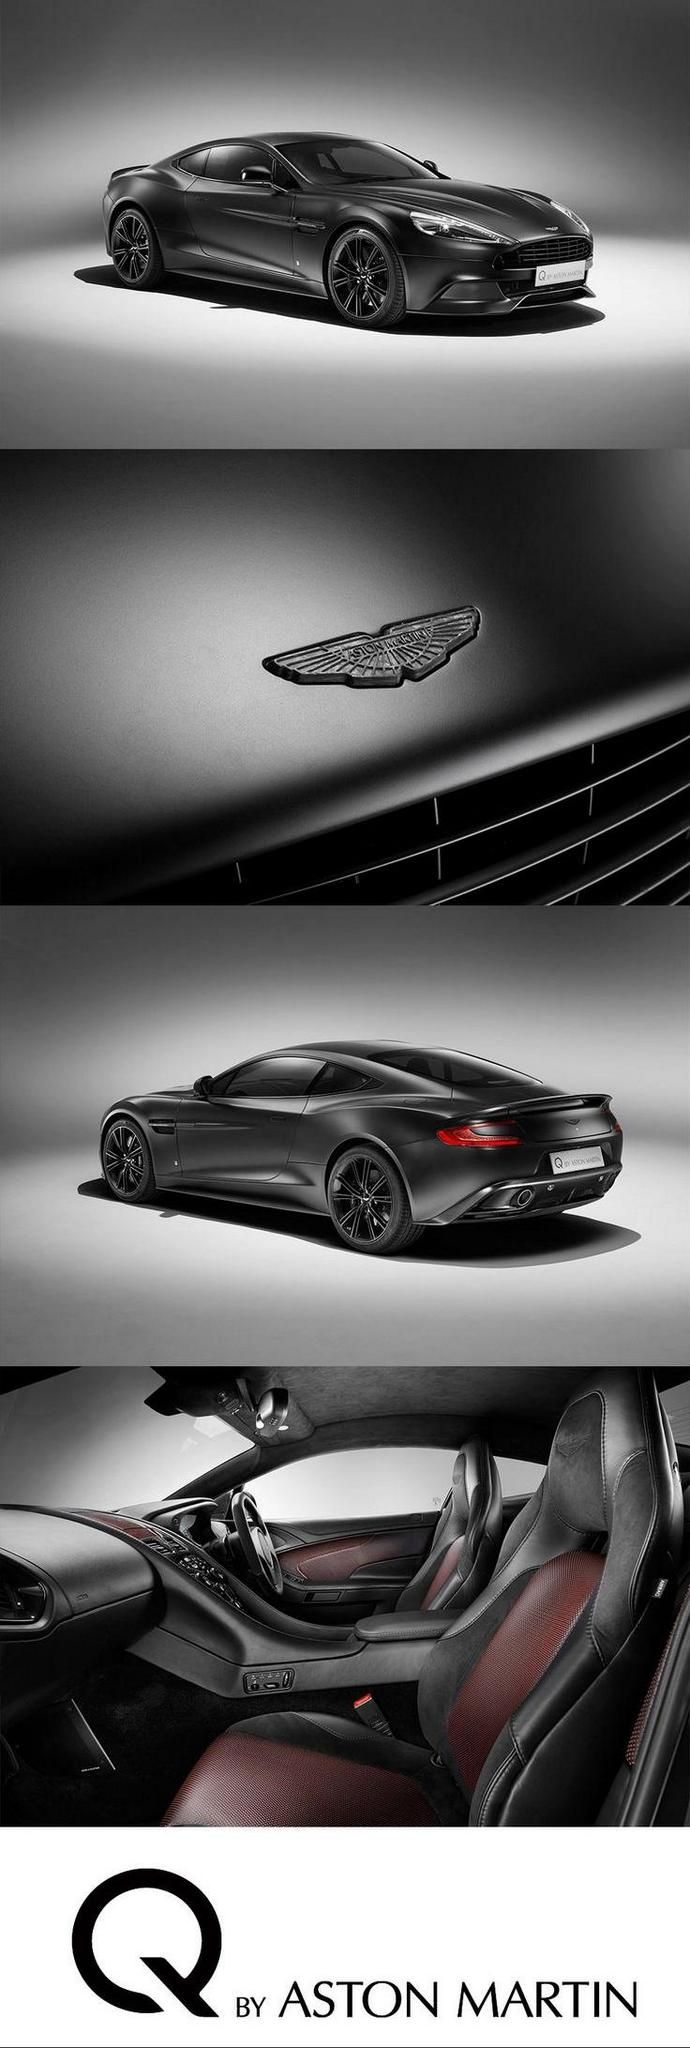 View the latest bespoke Q by Aston Martin creations on our dedicated Pinterest board: http://www.pinterest.com/astonmartin/q-by-aston-martin/…